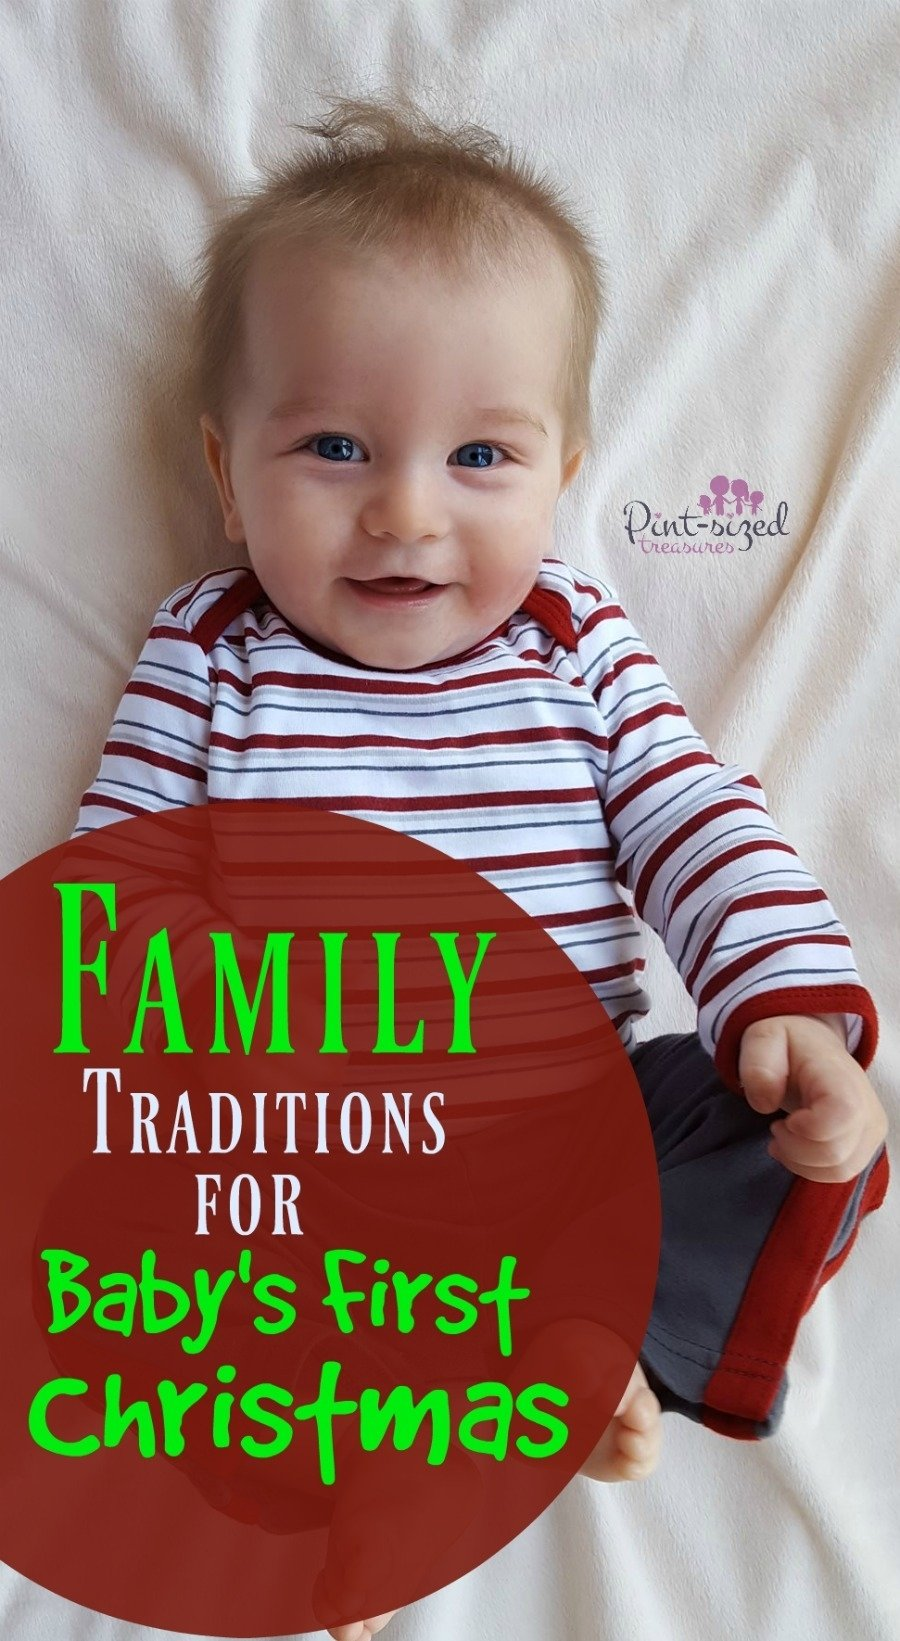 10 Stunning Family Picture Ideas With Baby family traditions for your babys first christmas c2b7 pint sized treasures 2020